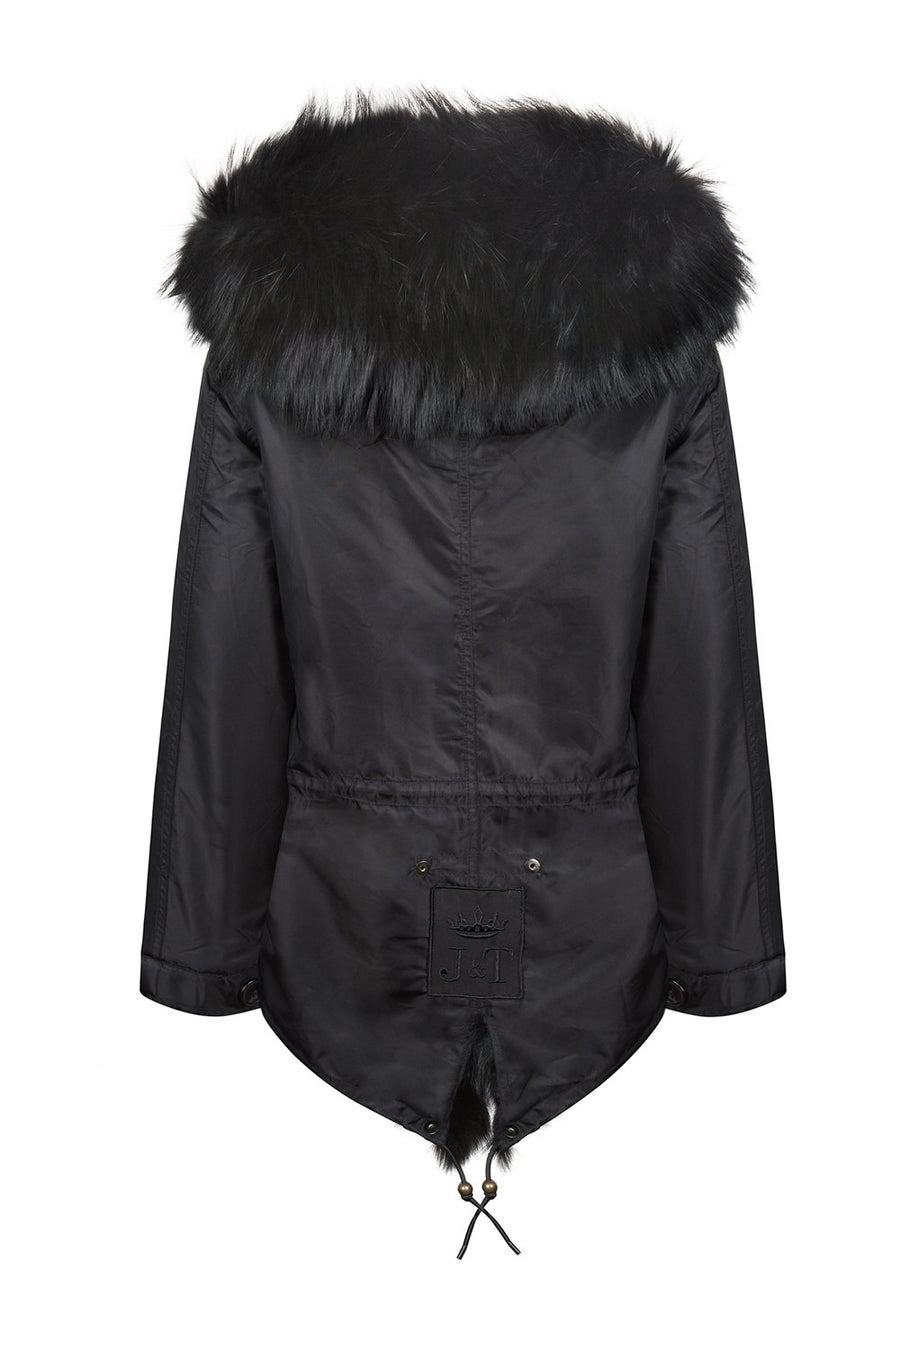 Shiny Black Grace Parka